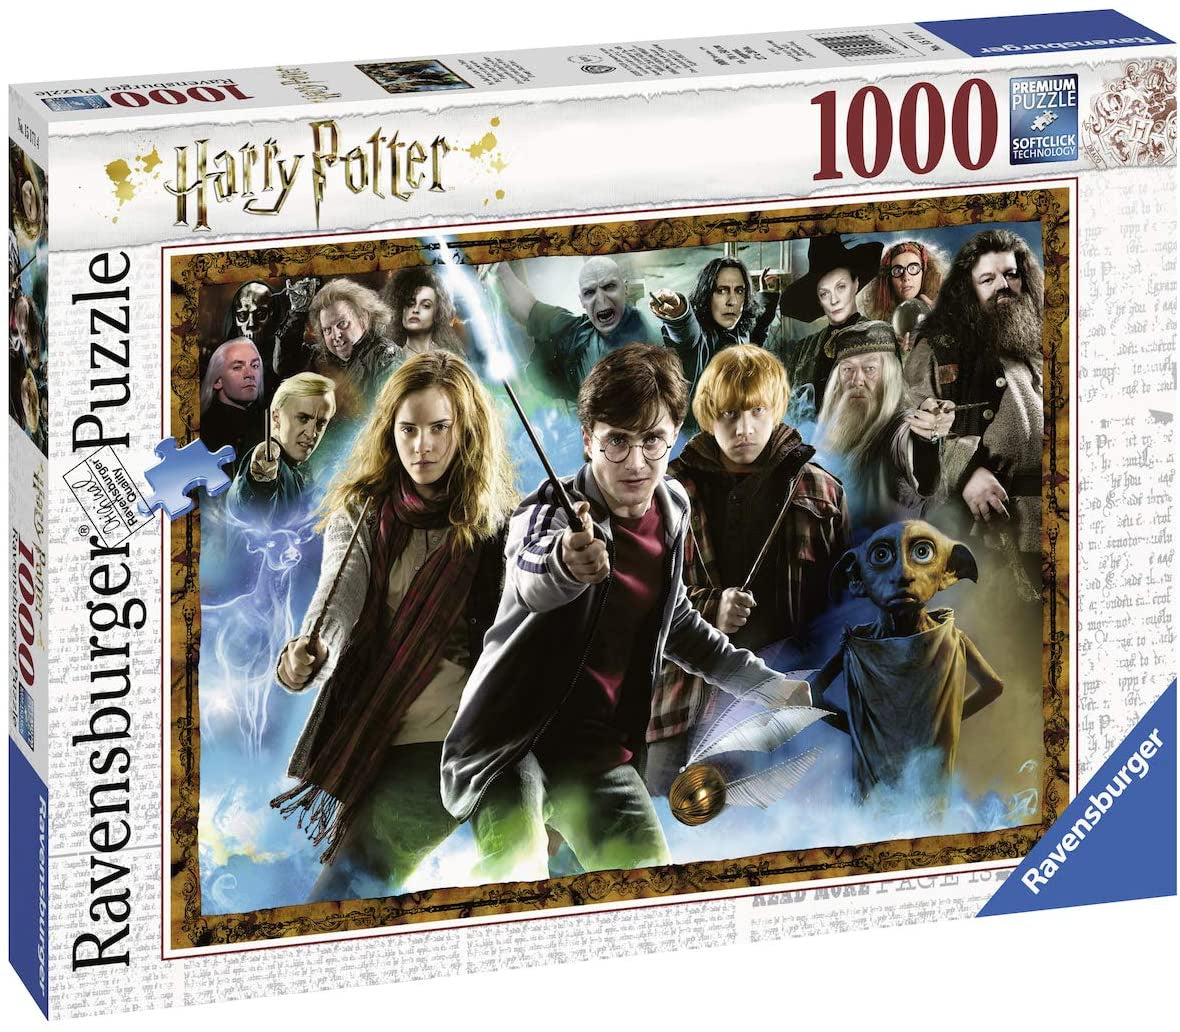 Harry Potter 1000pc Jigsaw Puzzle